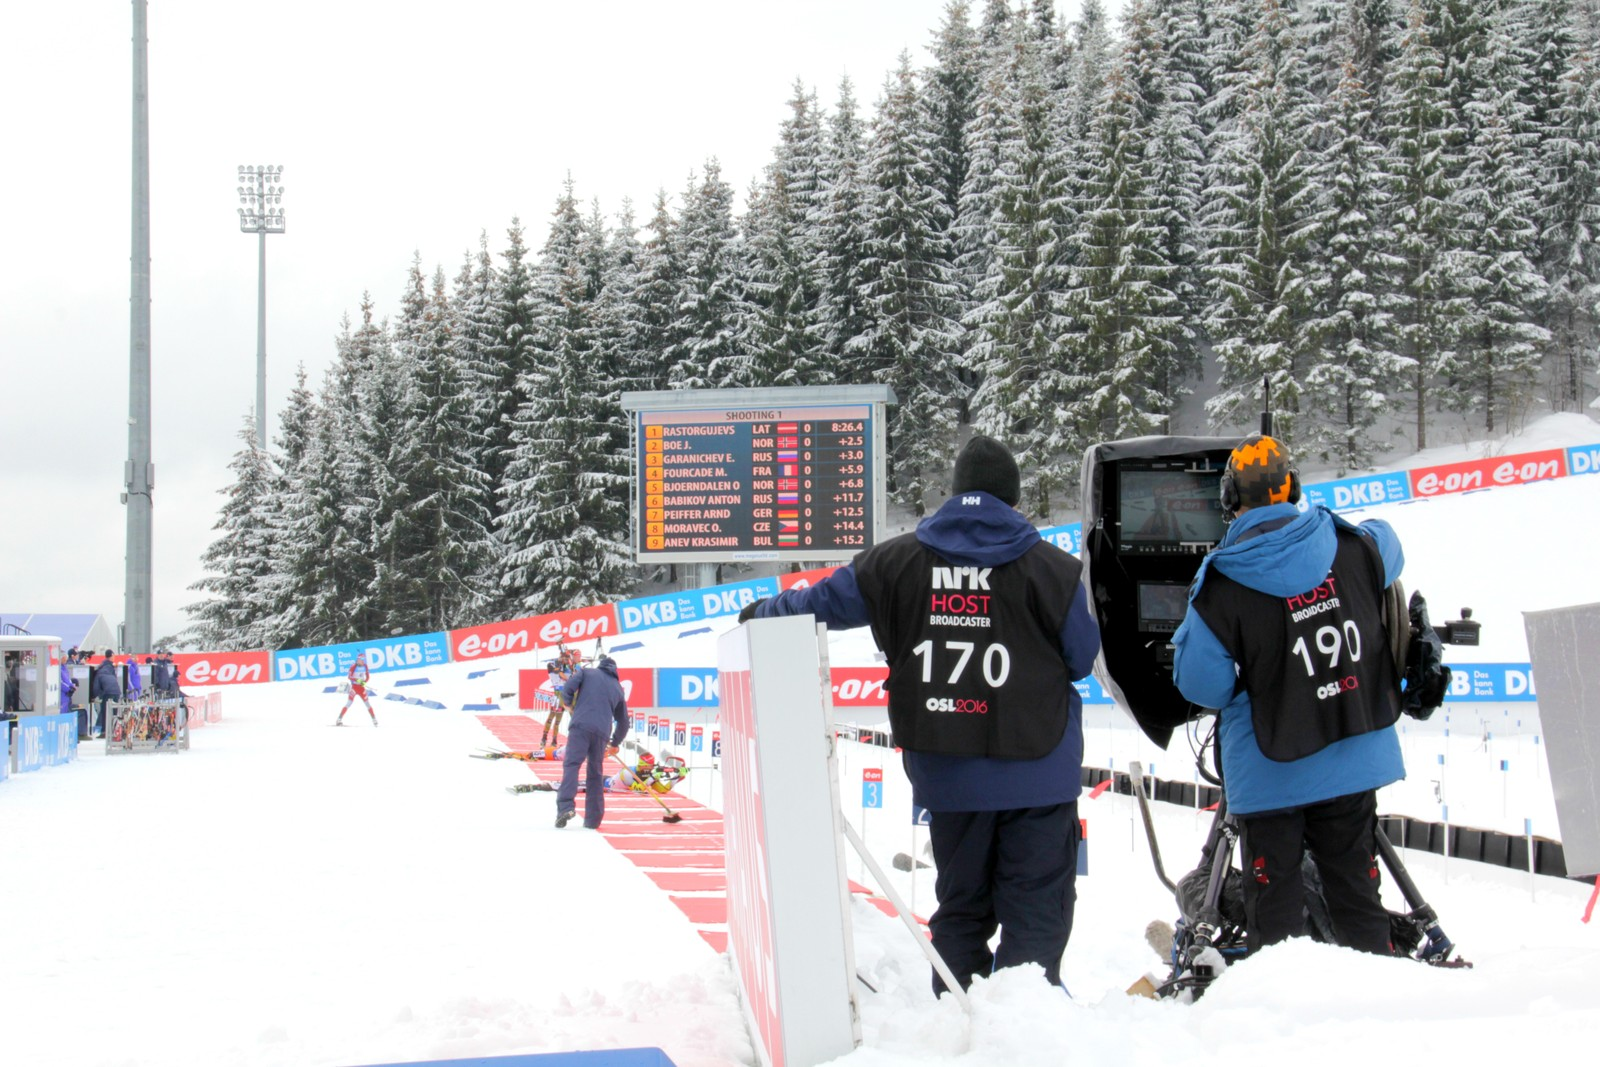 IBU Biathlon World Championships Oslo 2016: Sprint events Saturday 5 March:  NRK Host Broadcaster cameramen at the shooting range